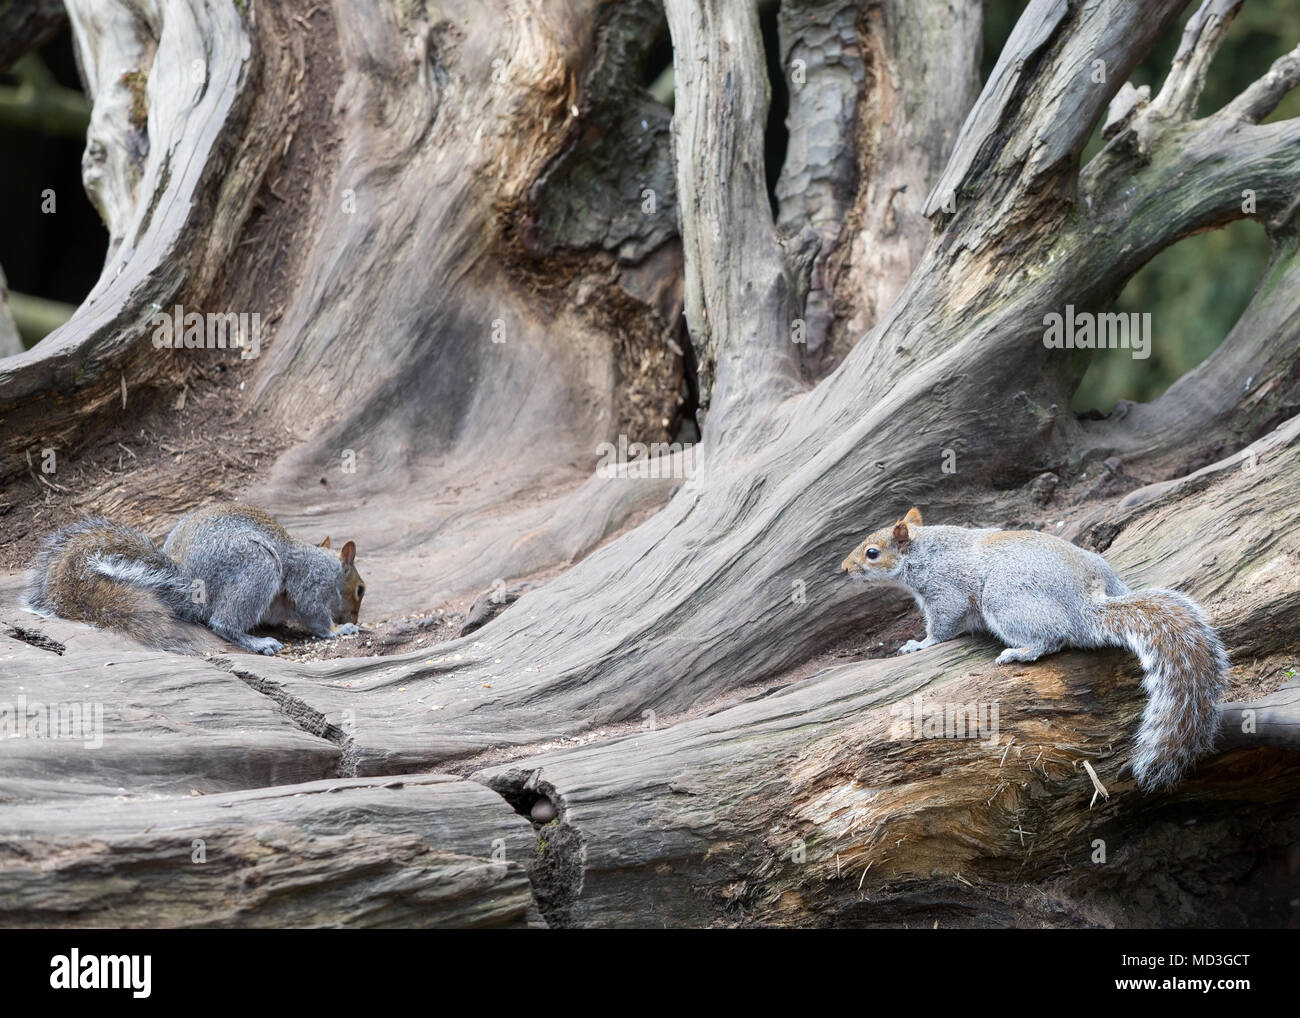 Multiple tree Squirrel on a fallen tree / Sciuridae at Clumber Park, Worksop, Nottinghamshire, UK - Stock Image